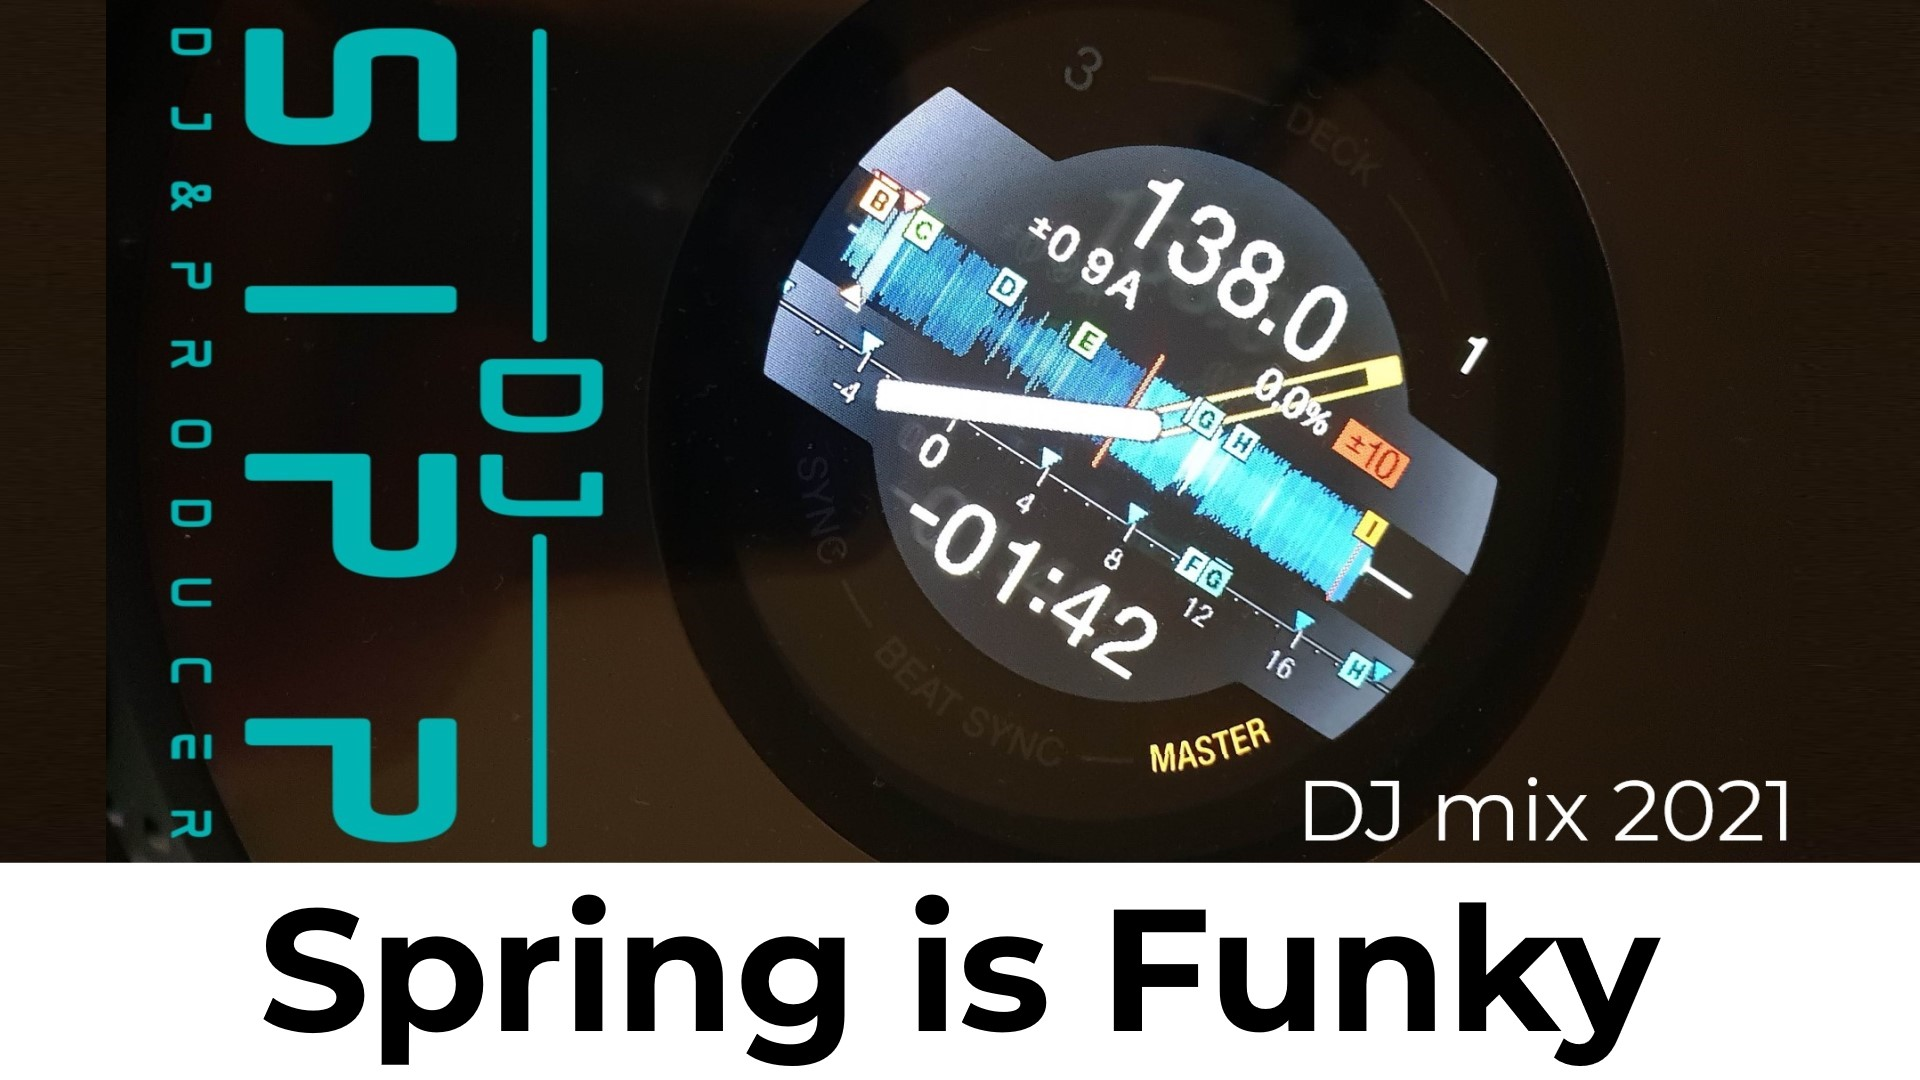 spring_is_funky_mix_cover_2021